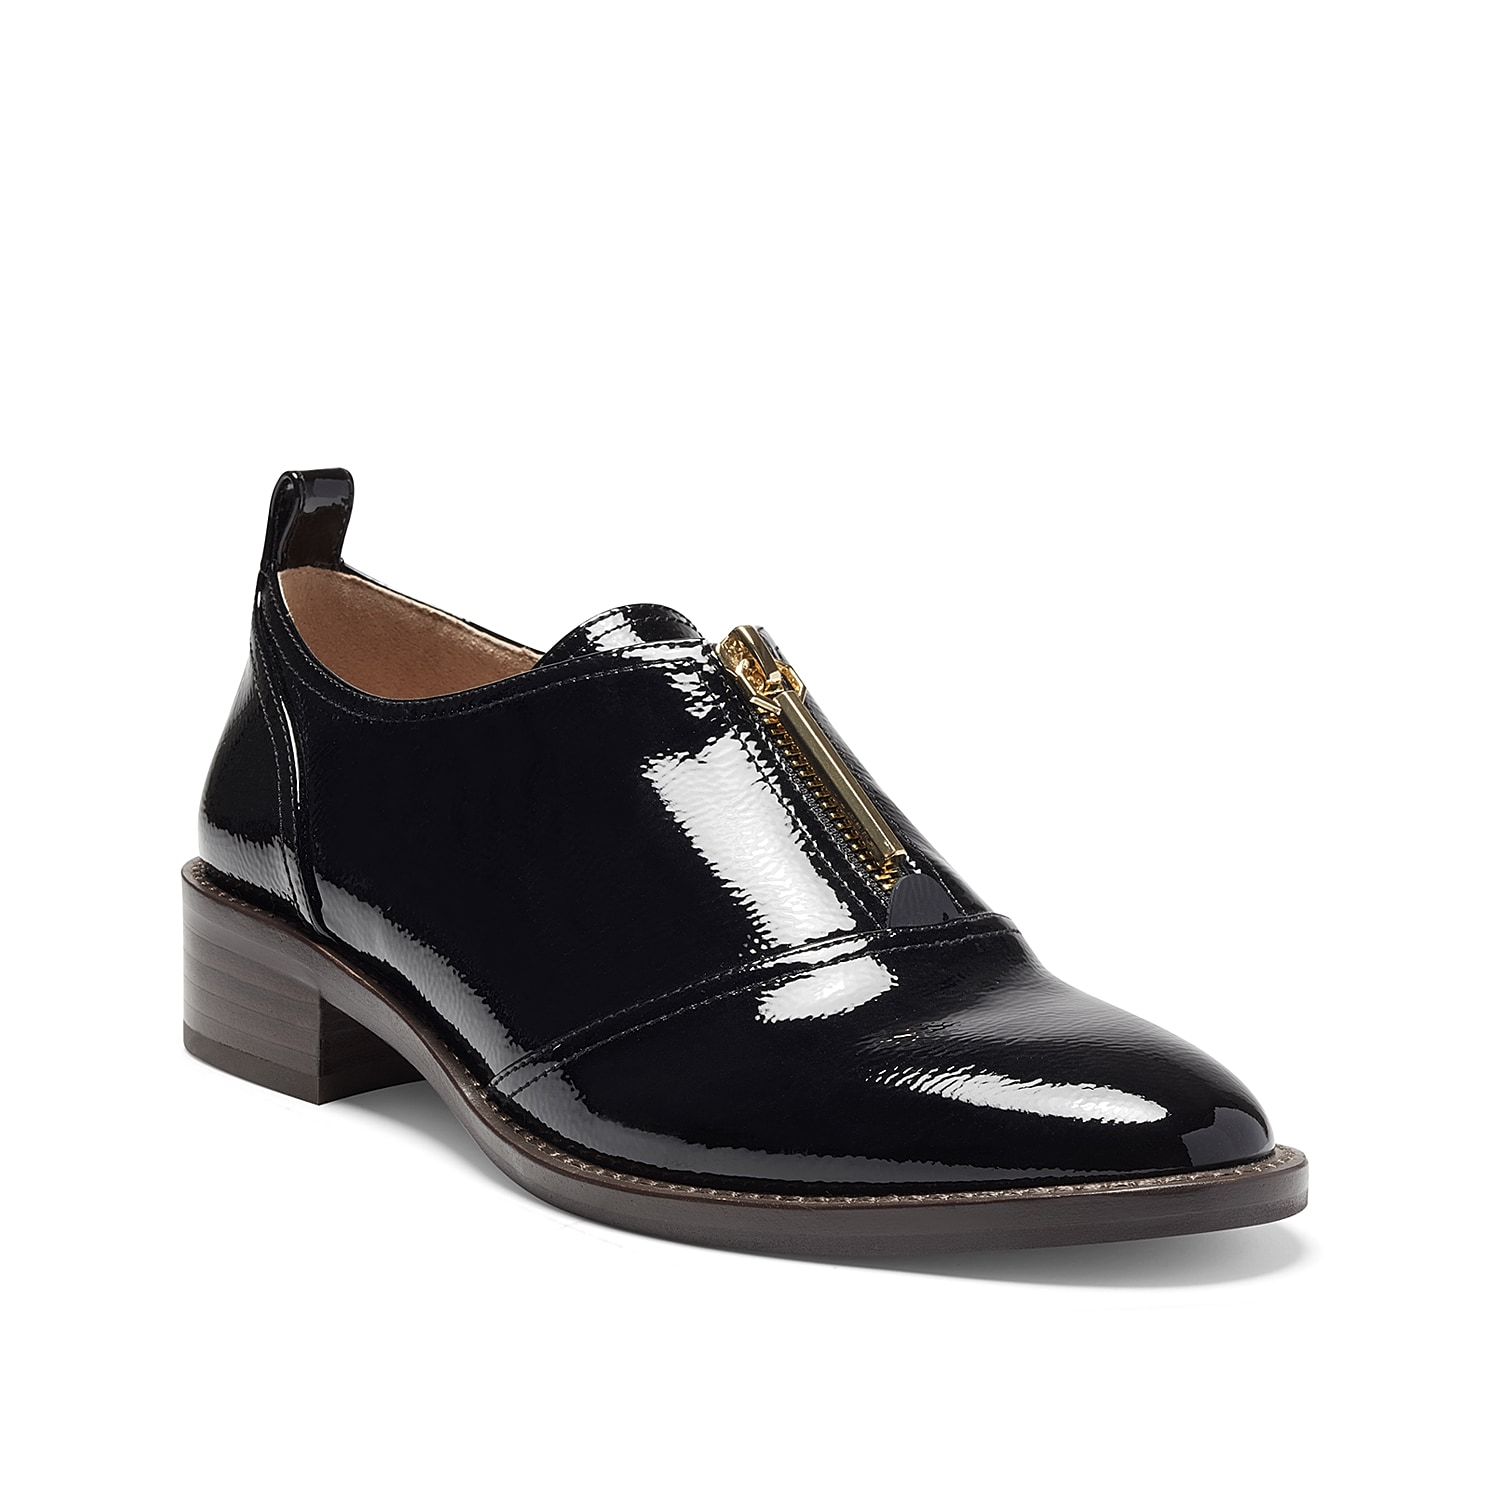 With its classy inspiration and modern day touch, the Louise Et Cie Fadi oxford shoe can be your go-to dressy footwear. Topped with a high-shine finish, its leather construction is further highlighted with brass-tone hardware, almond toe and contrasted by a stacked-like heel.